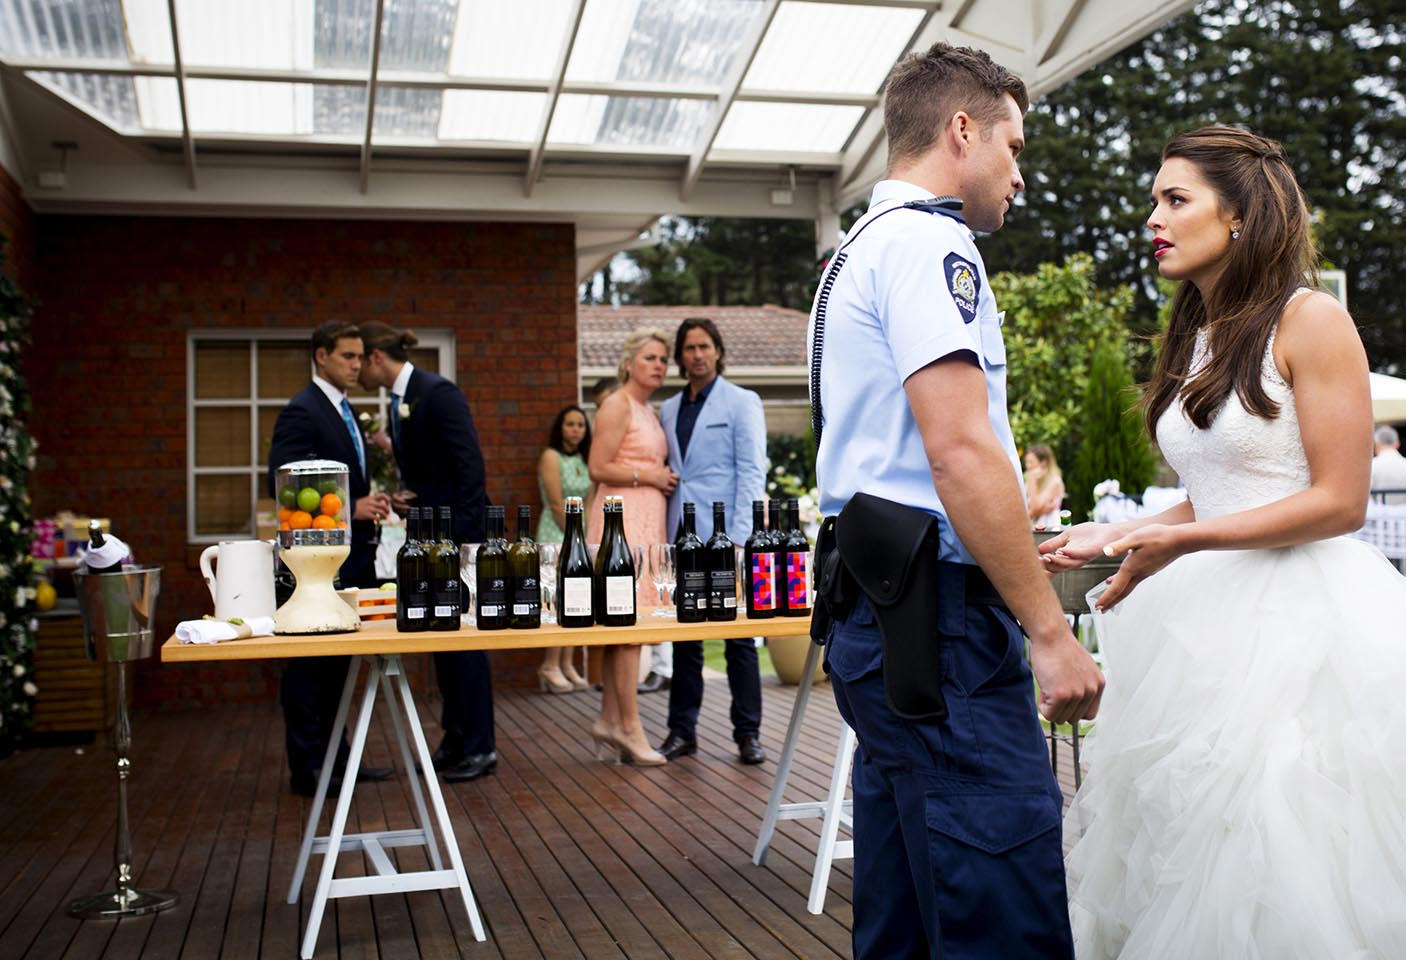 Paige is arrested by Mark at their wedding